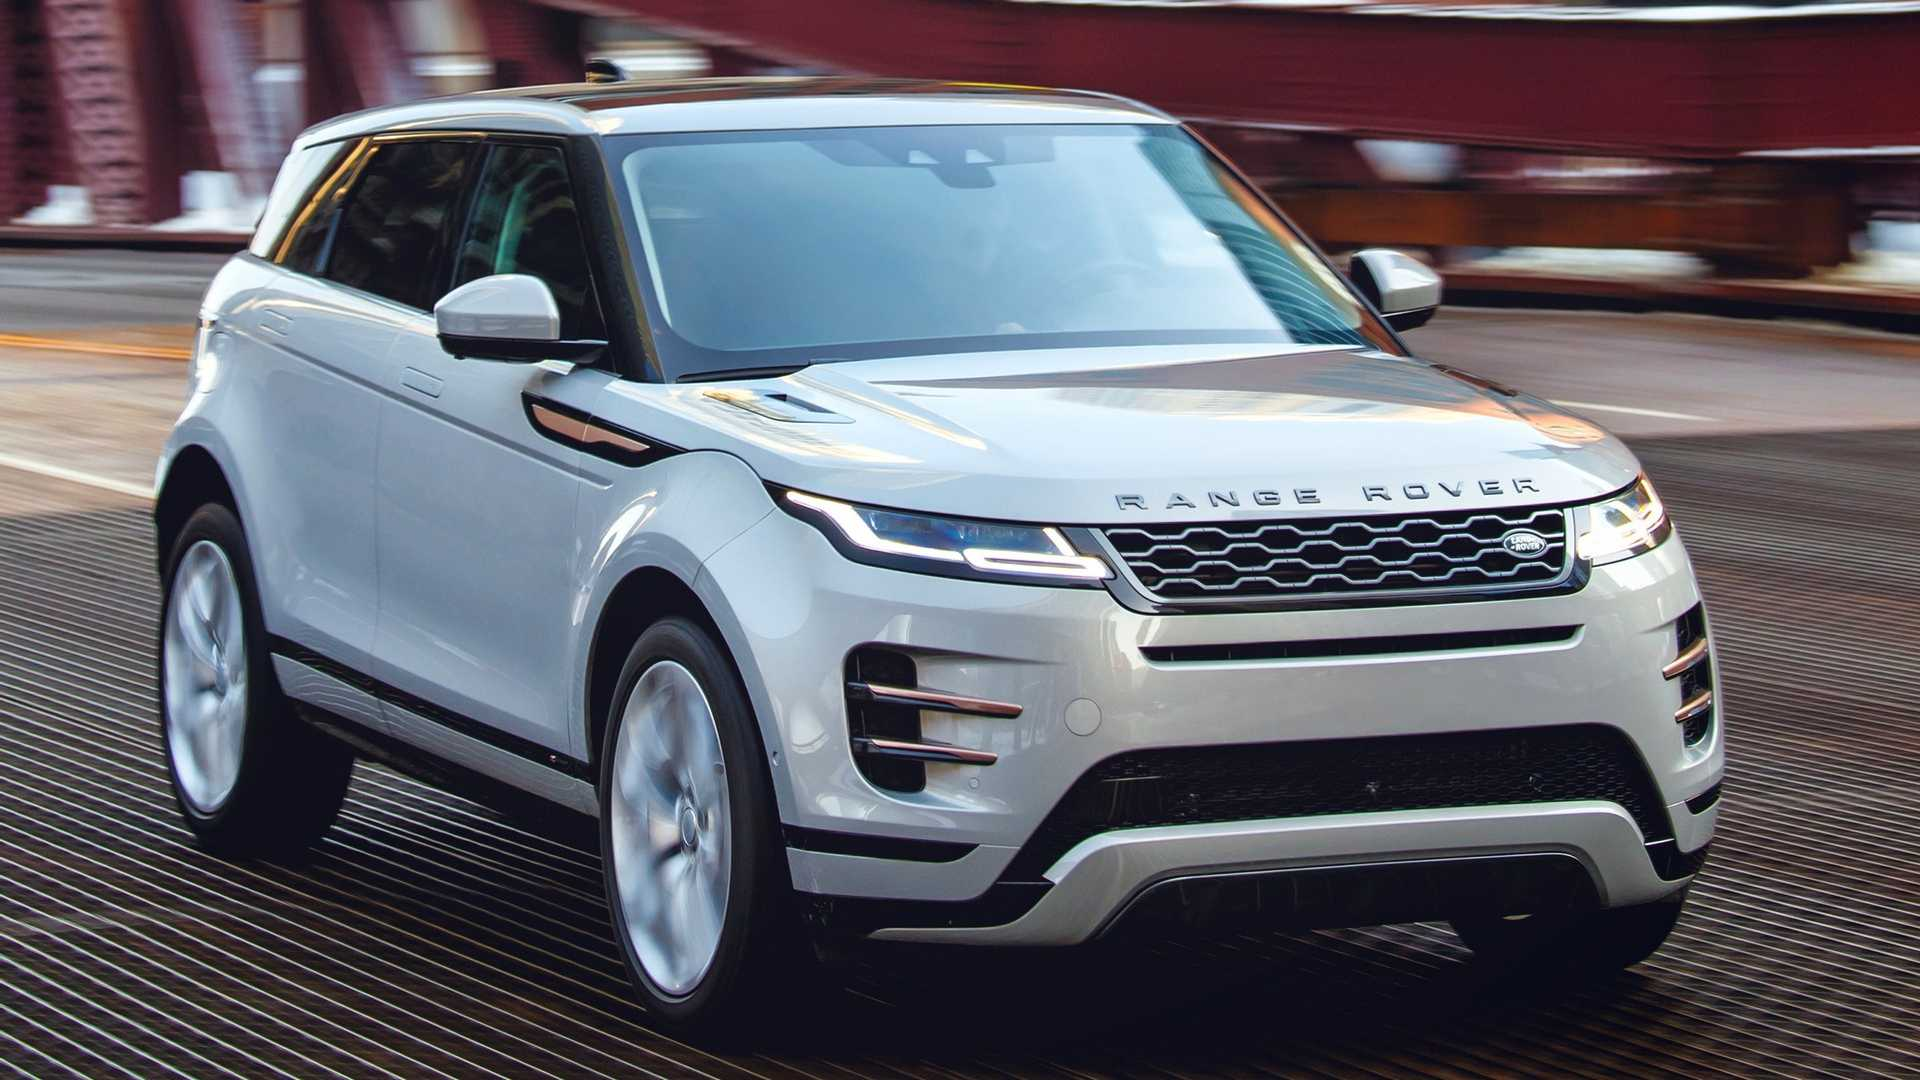 19 Best 2020 Range Rover Evoque Redesign And Review